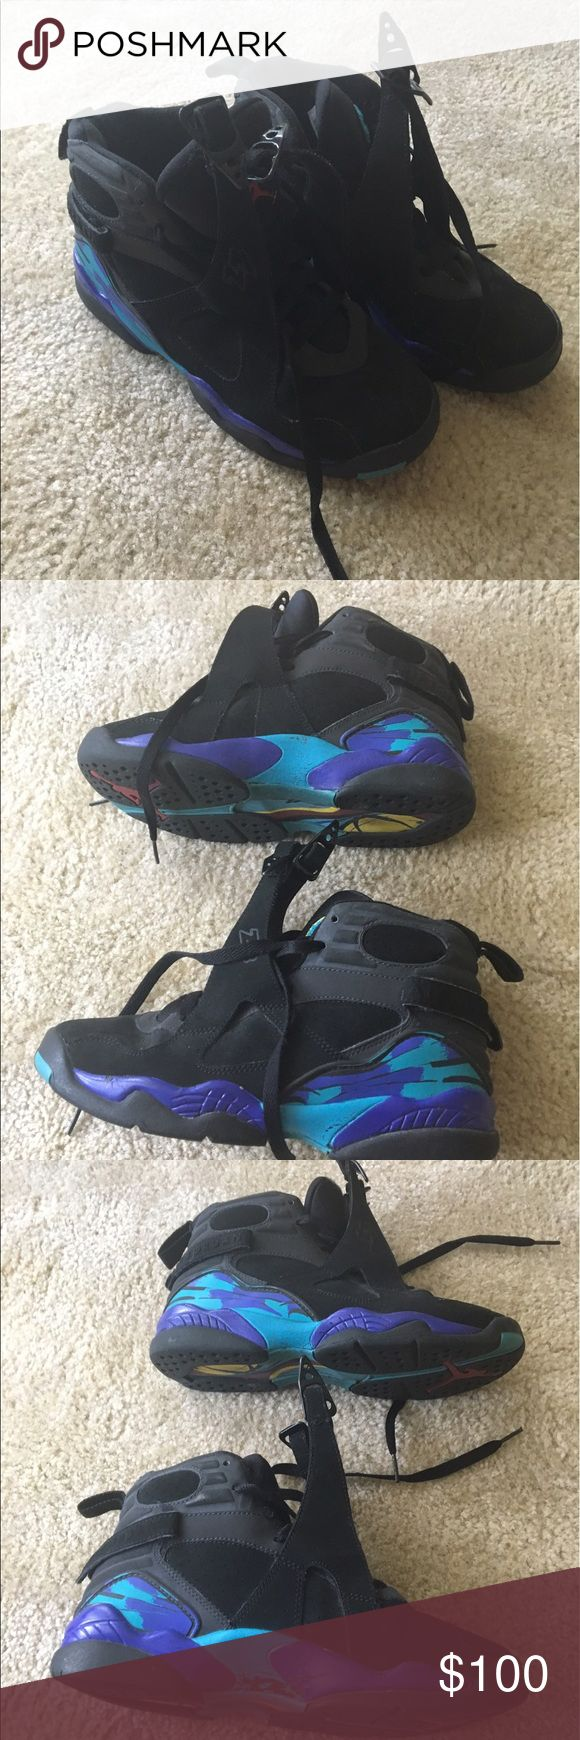 """Air Jordan """"Aqua"""" 8 Used but good condition Air Jordan Aqua 8s. These are not from the recent batch released, they are in fact over 10 years old! I do not have the original box to them. I do have a matching jacket that is NWT that will be posted. Size 5.5Y Nike Shoes Sneakers"""